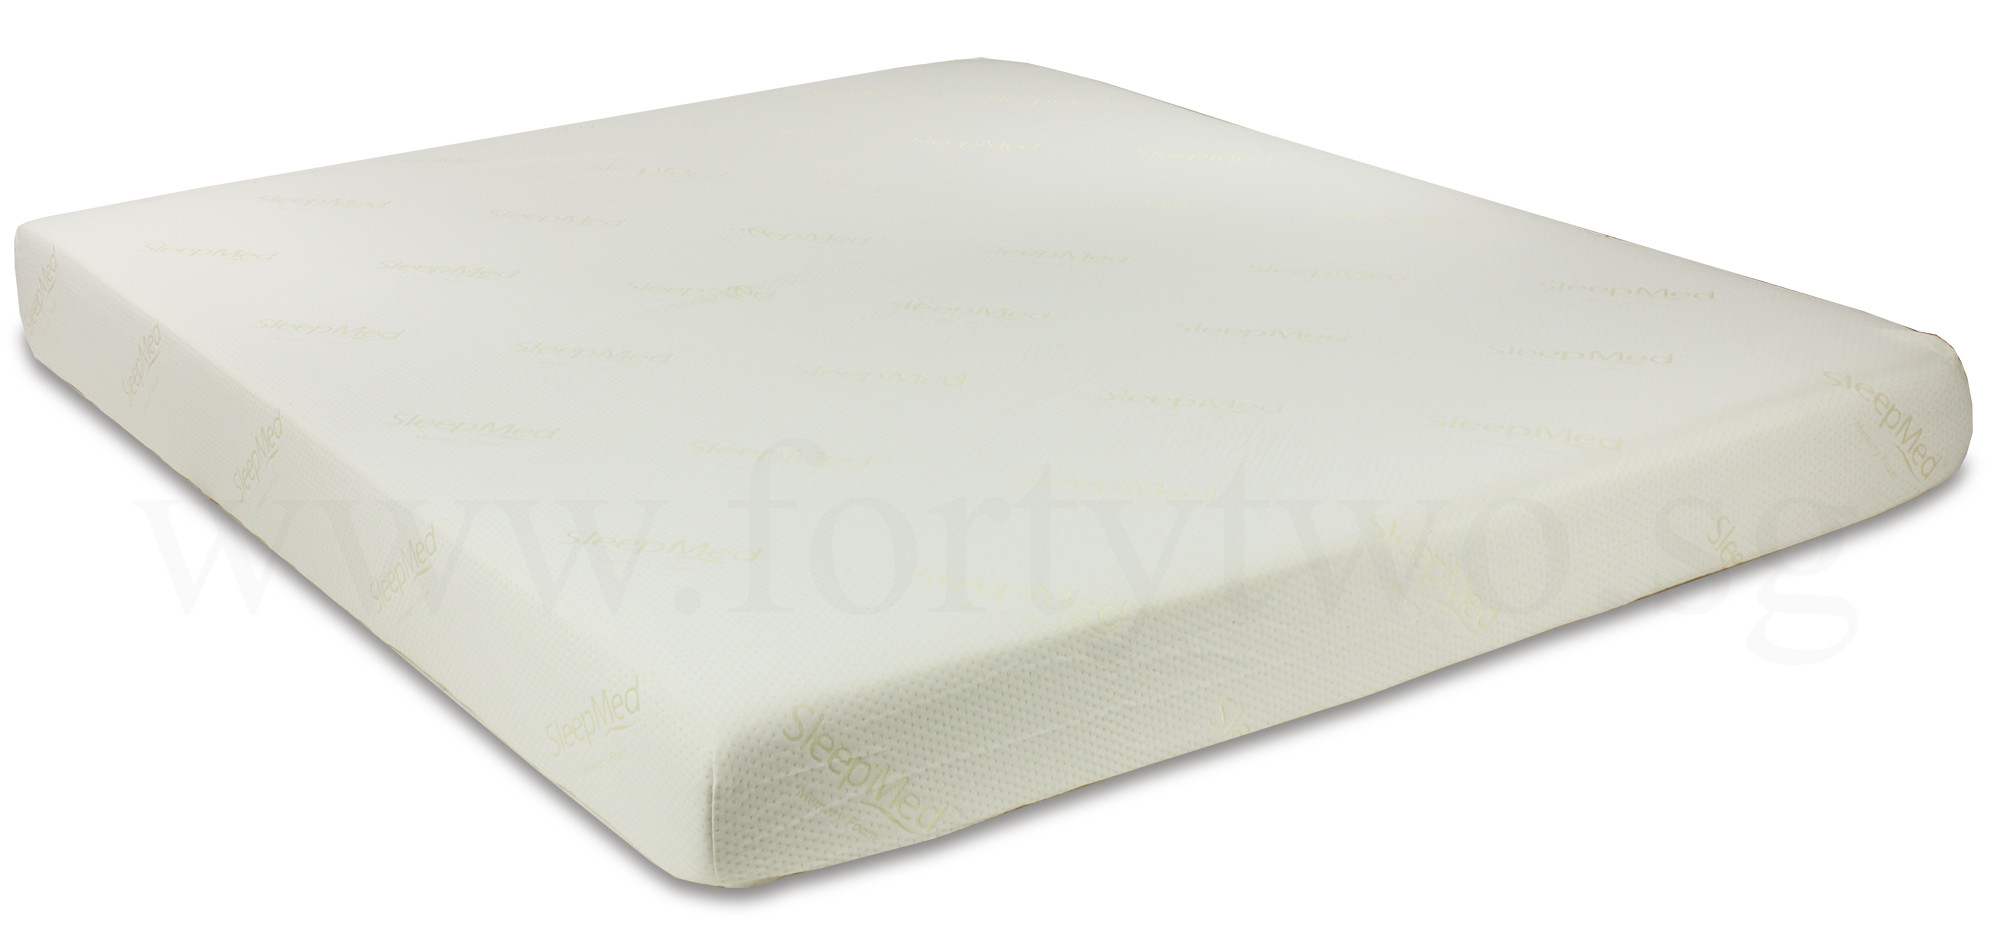 Sleepmed memory foam mattress king in 7 inch furniture home d cor fortytwo Memory foam king mattress